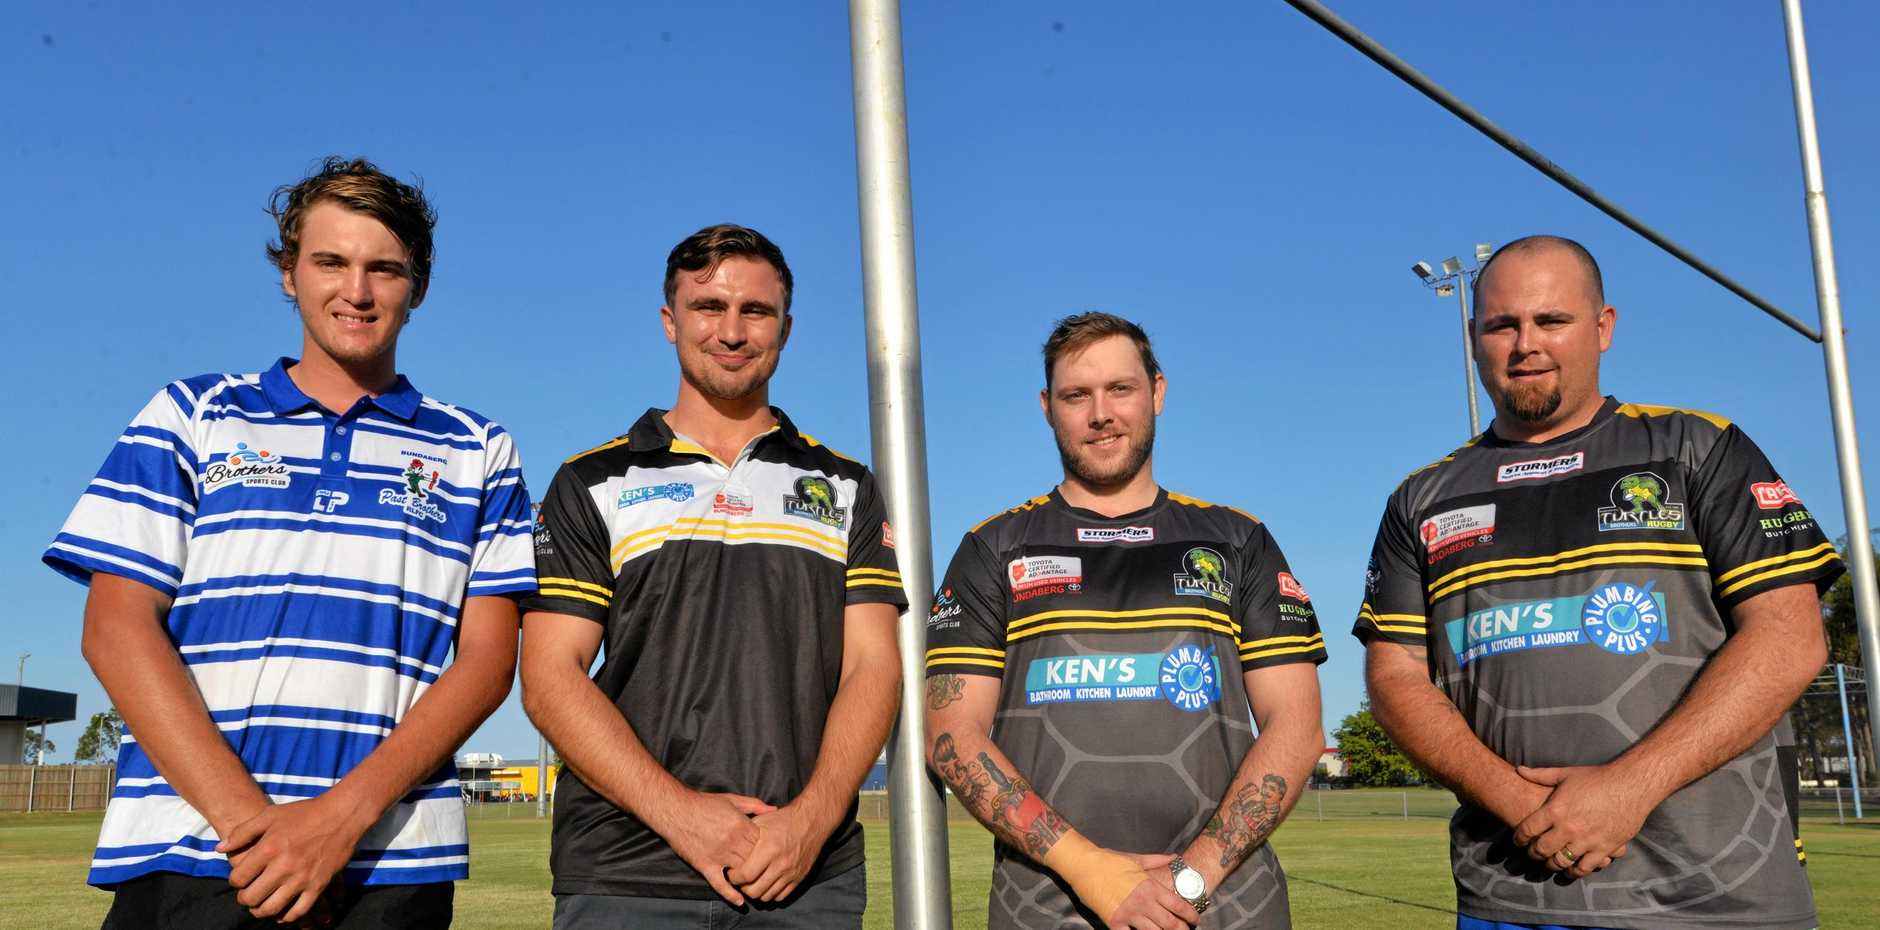 READY FOR ACTION: Jamie Morey, Alexander McClymont, Cory Hibble and Josh Lucas will aim for their first title in Turtles Brothers colours.